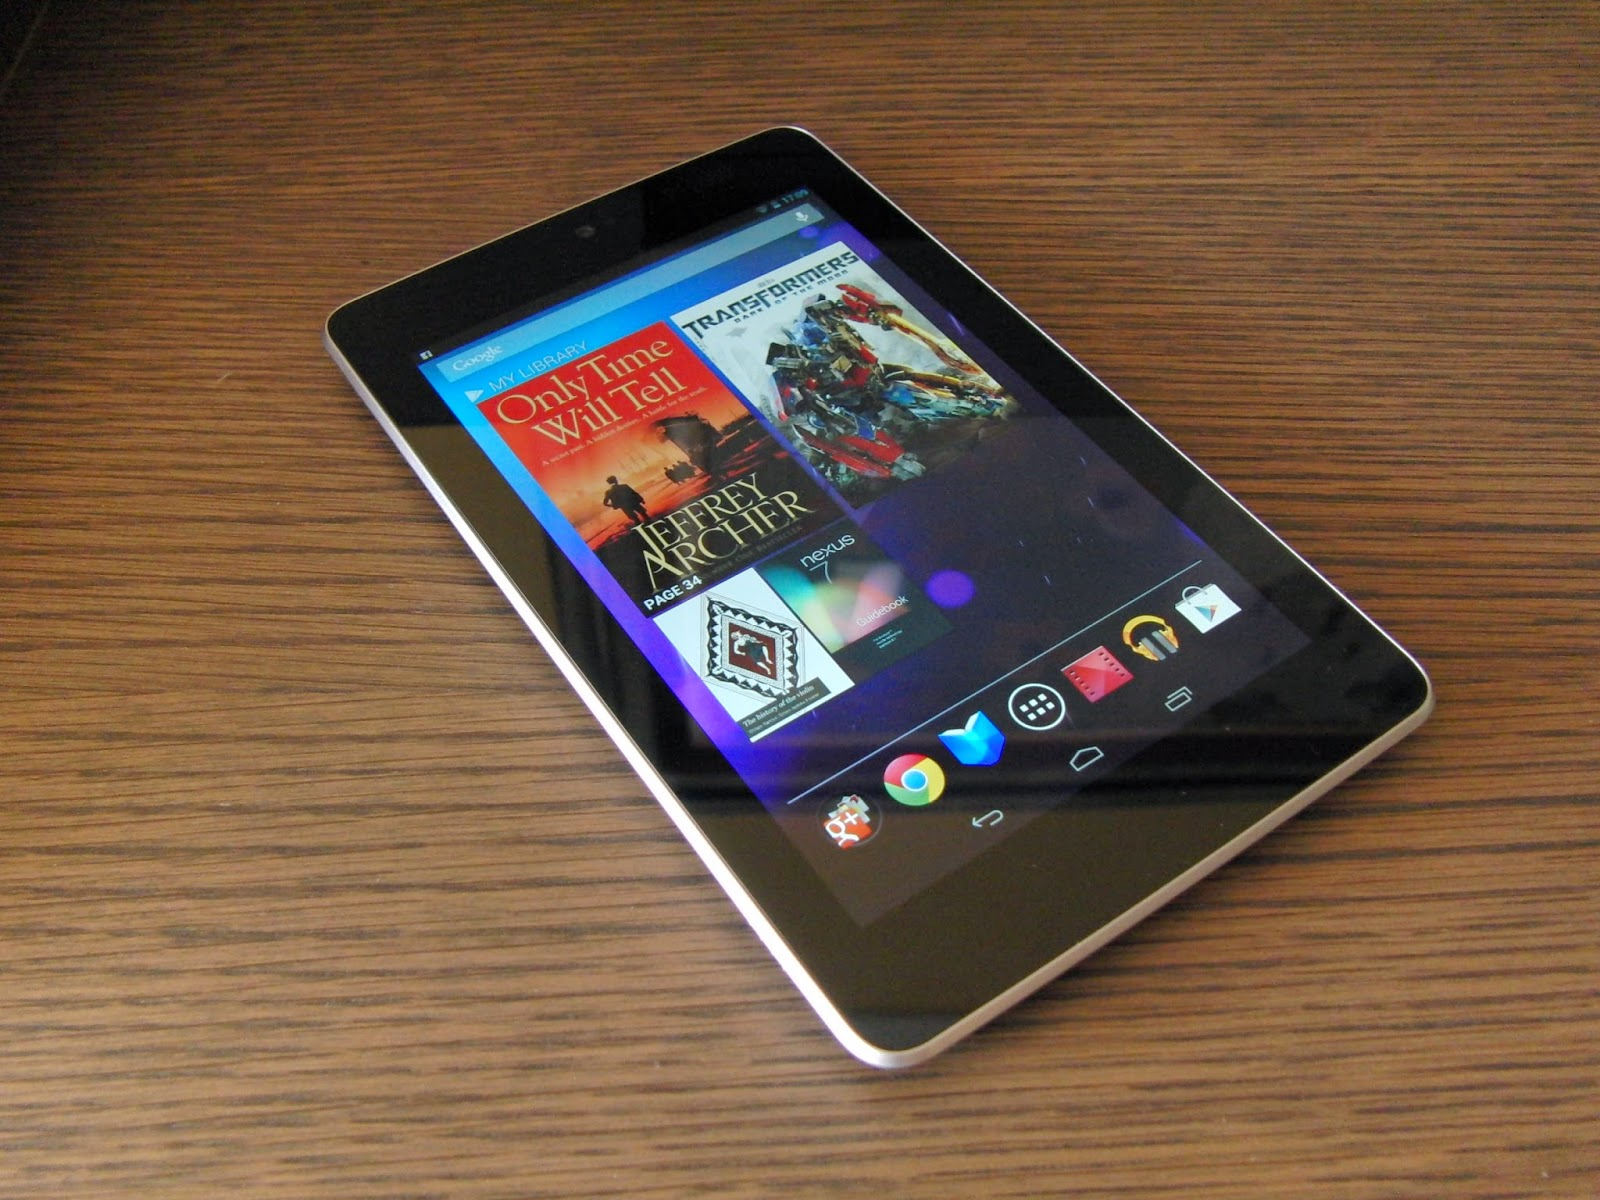 The New Google Nexus 7 32G 1